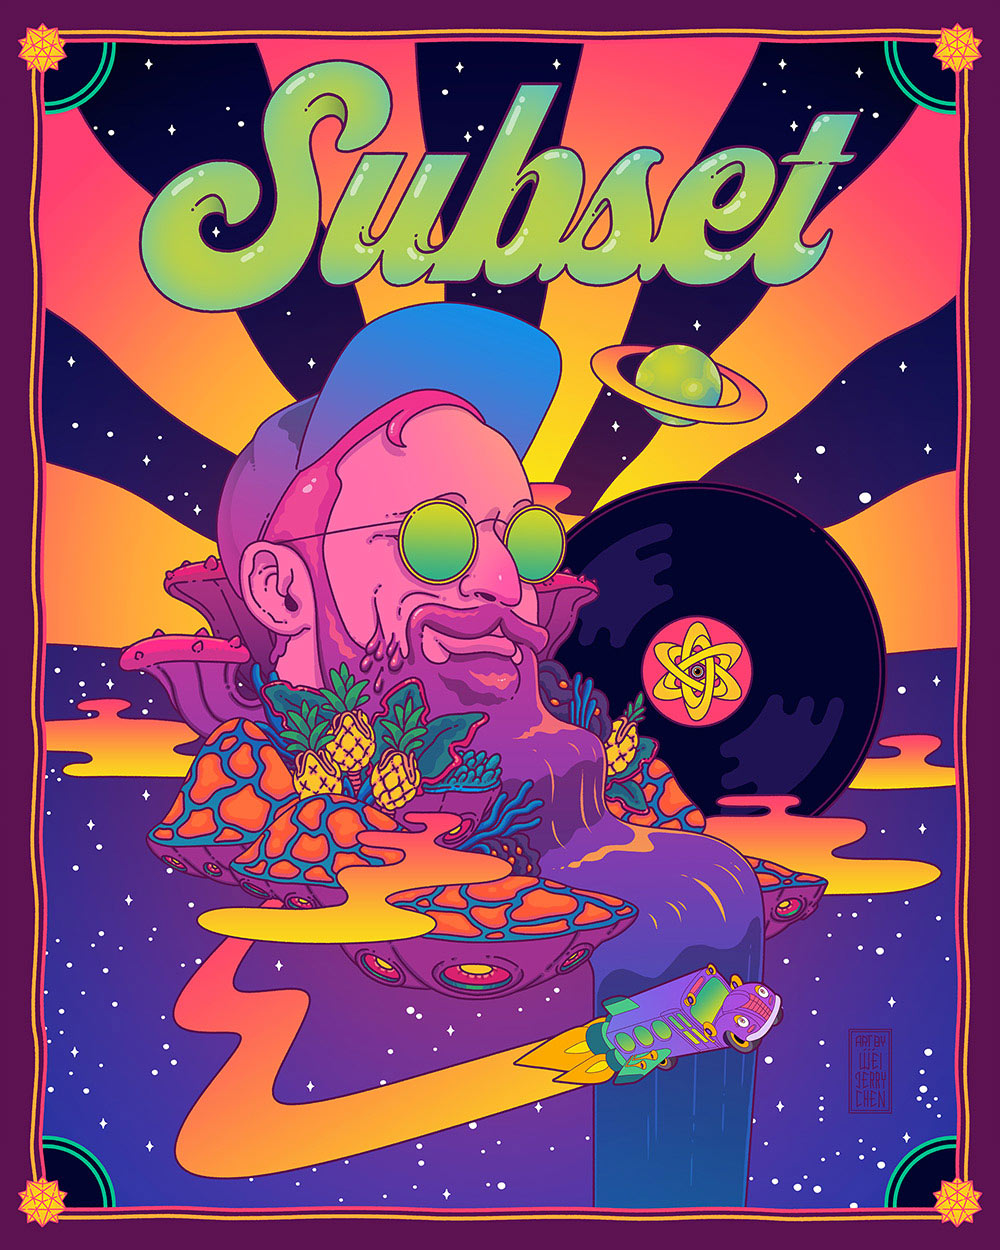 Poster illustration for  @SubsetGetsIt